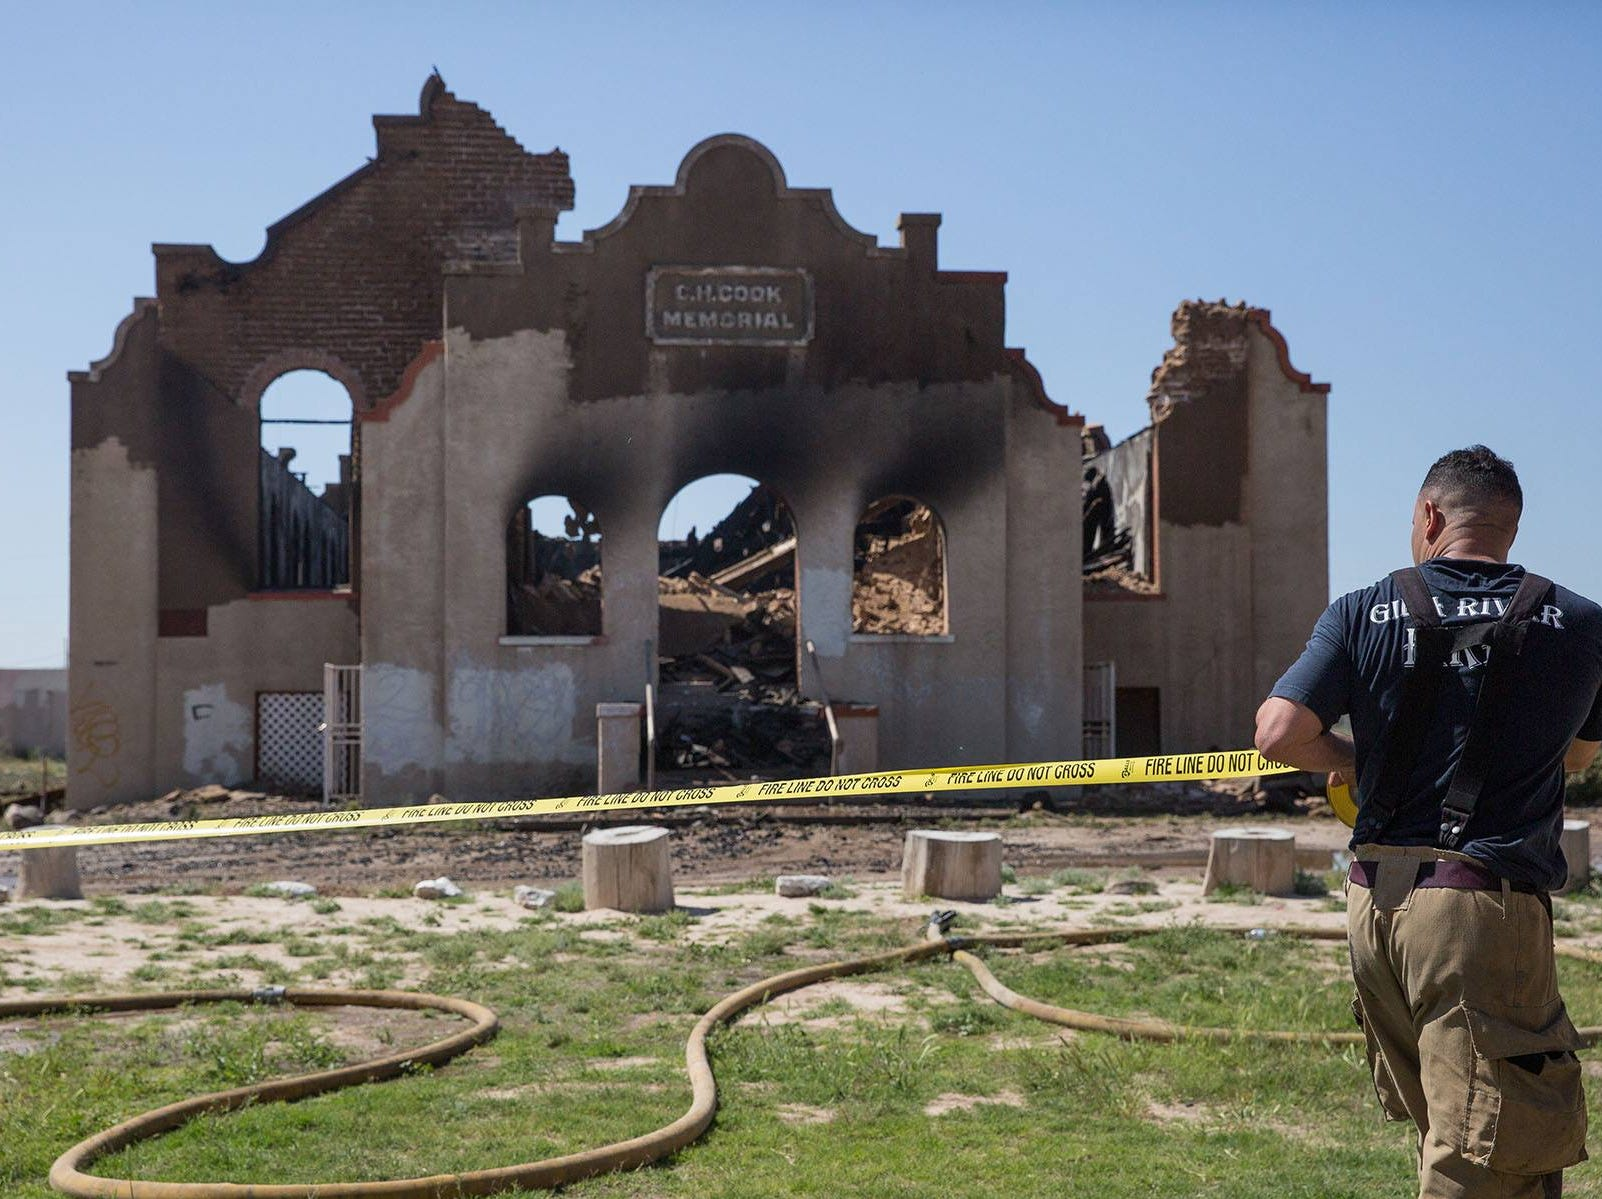 A Gila River fire fighter brings police tape across the front yard of the church after the fire was extinguished.